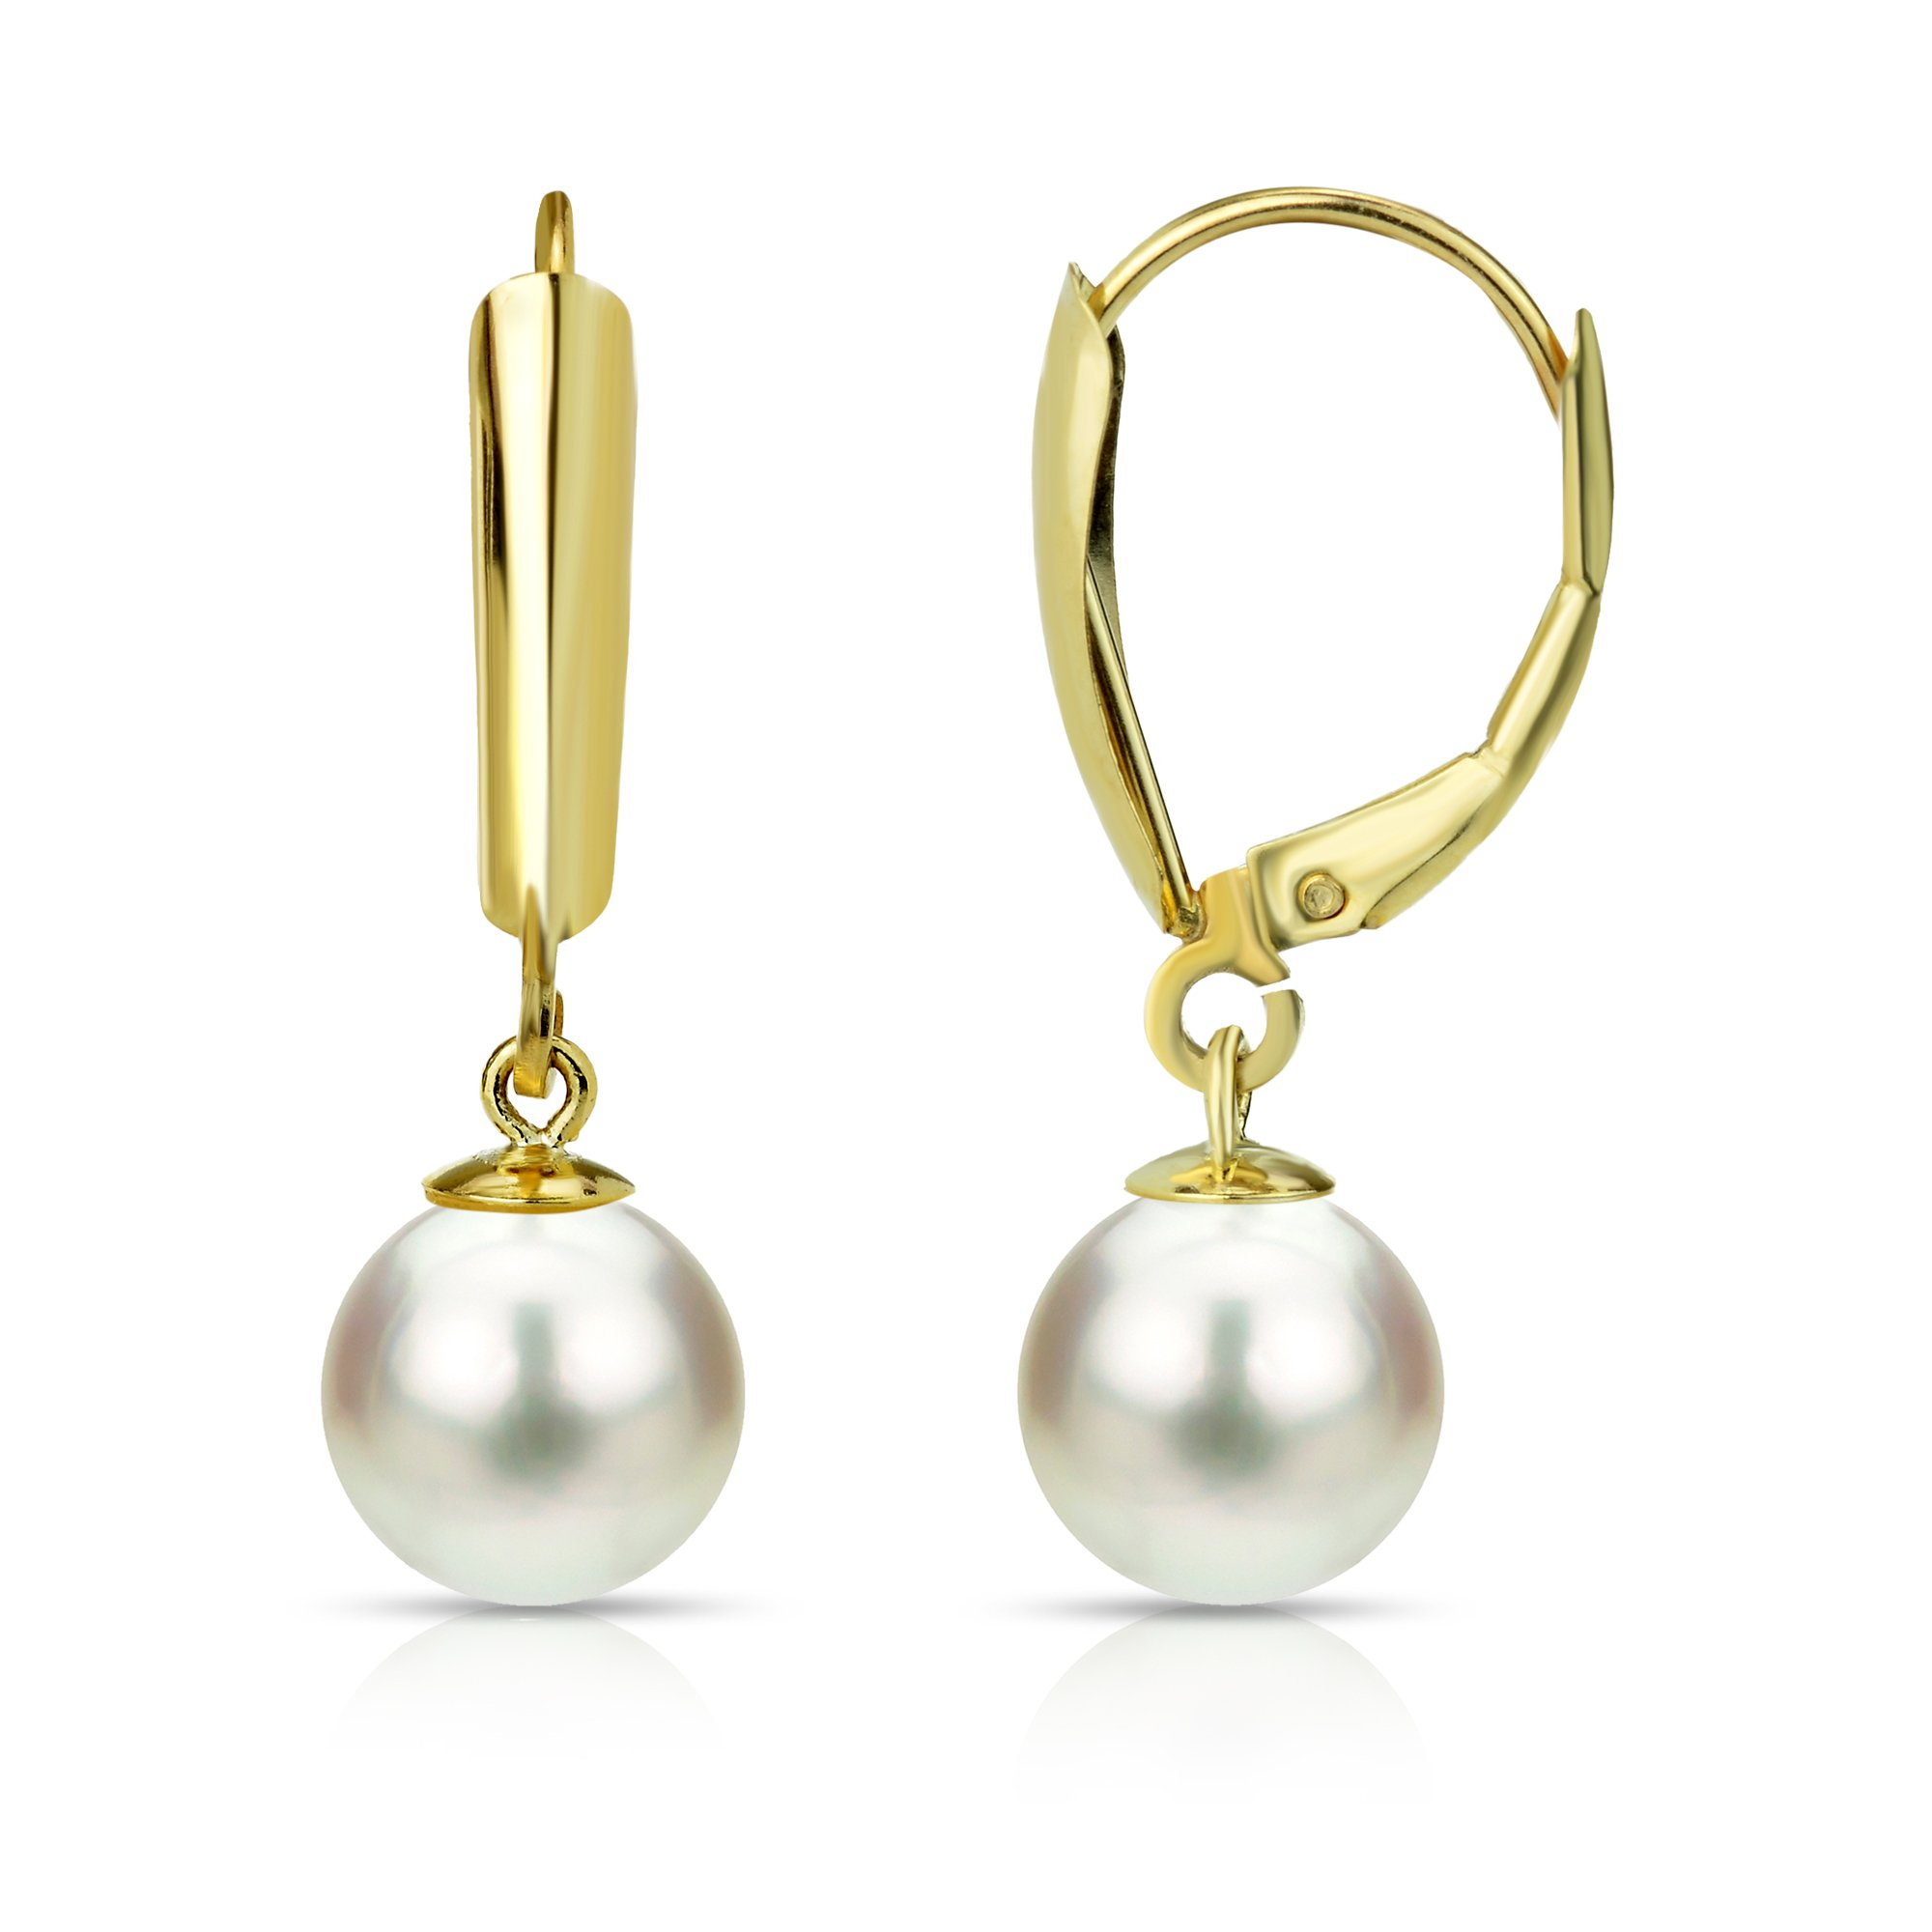 18k Yellow Gold 5-5.5mm Round White Freshwater Cultured High Luster Pearl Lever-Back Dangle Earrings